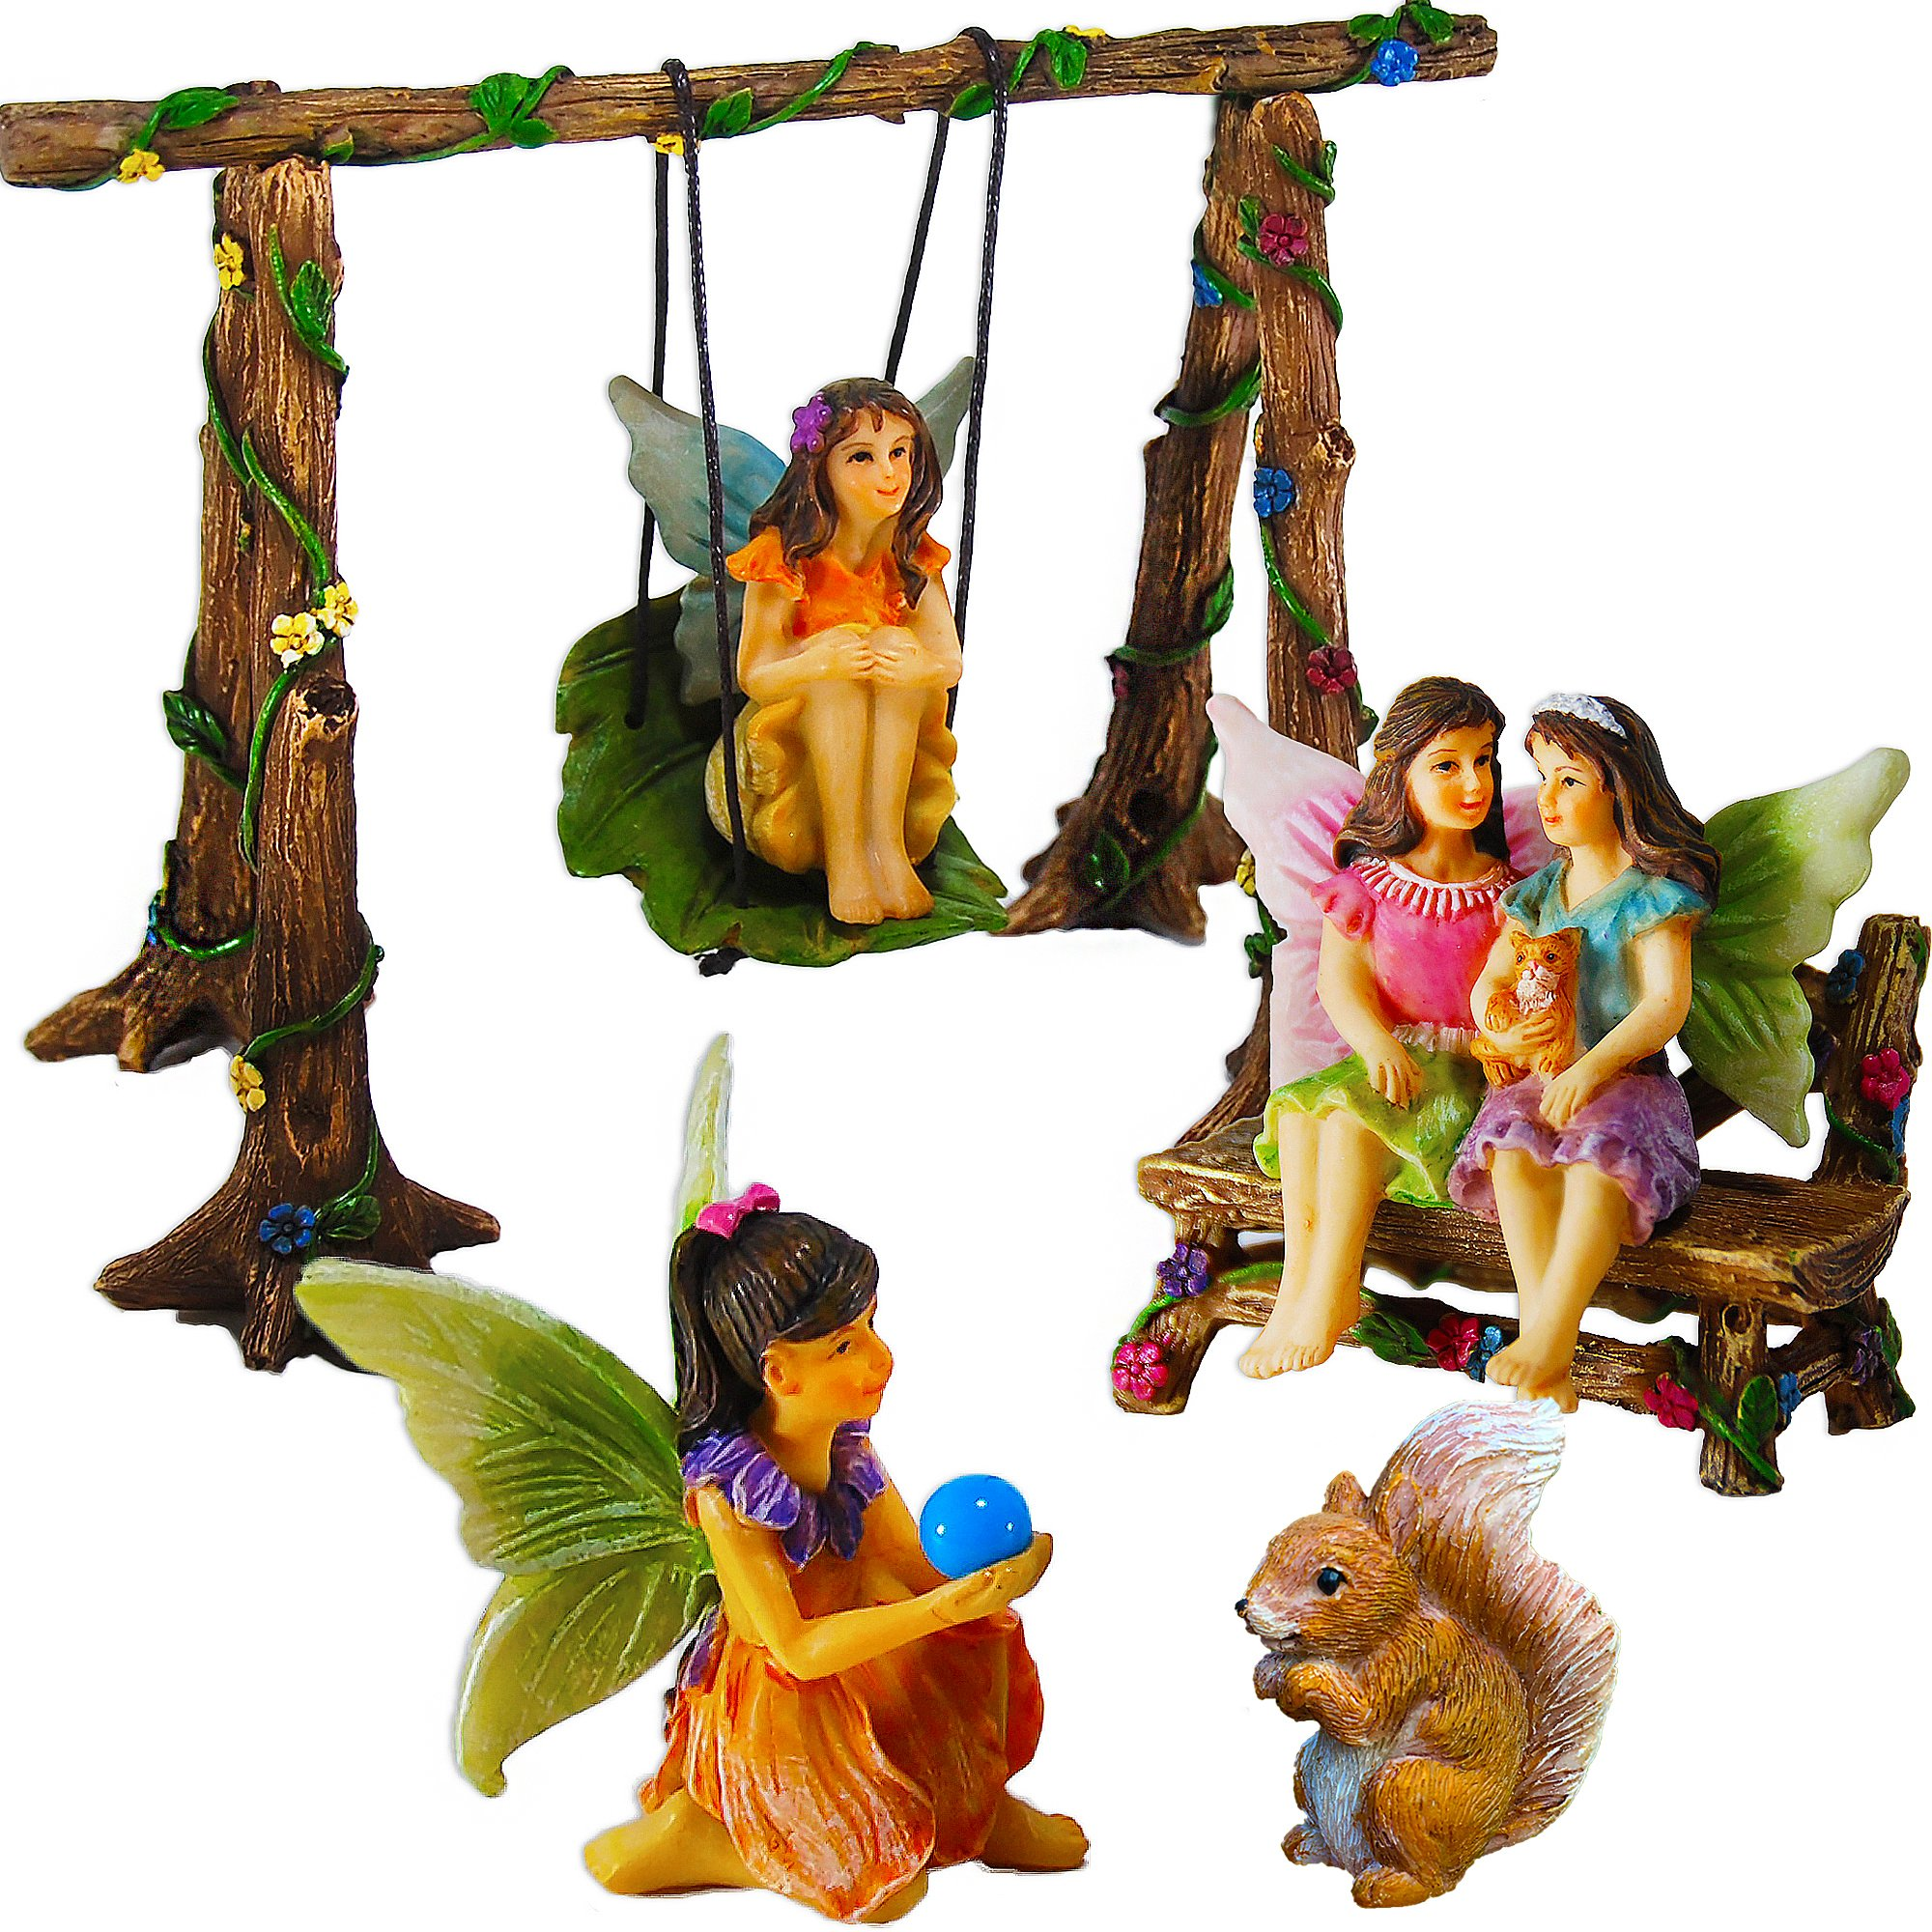 Mood Lab Fairy Garden - Accessories Kit Miniature Figurines - Hand Painted Swing Set of 6 pcs Outdoor House Decor